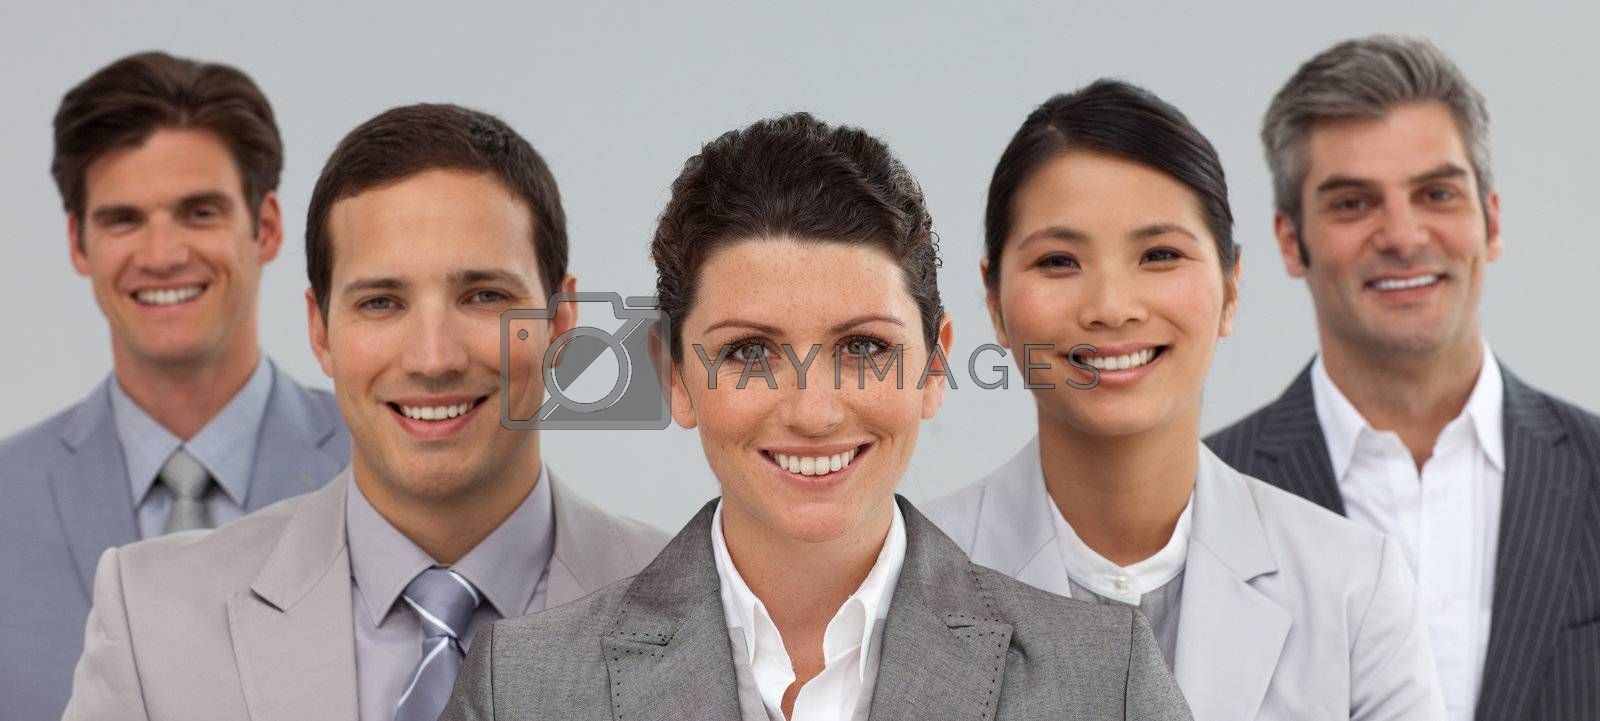 Royalty free image of Business group showing diversity standing together by Wavebreakmedia